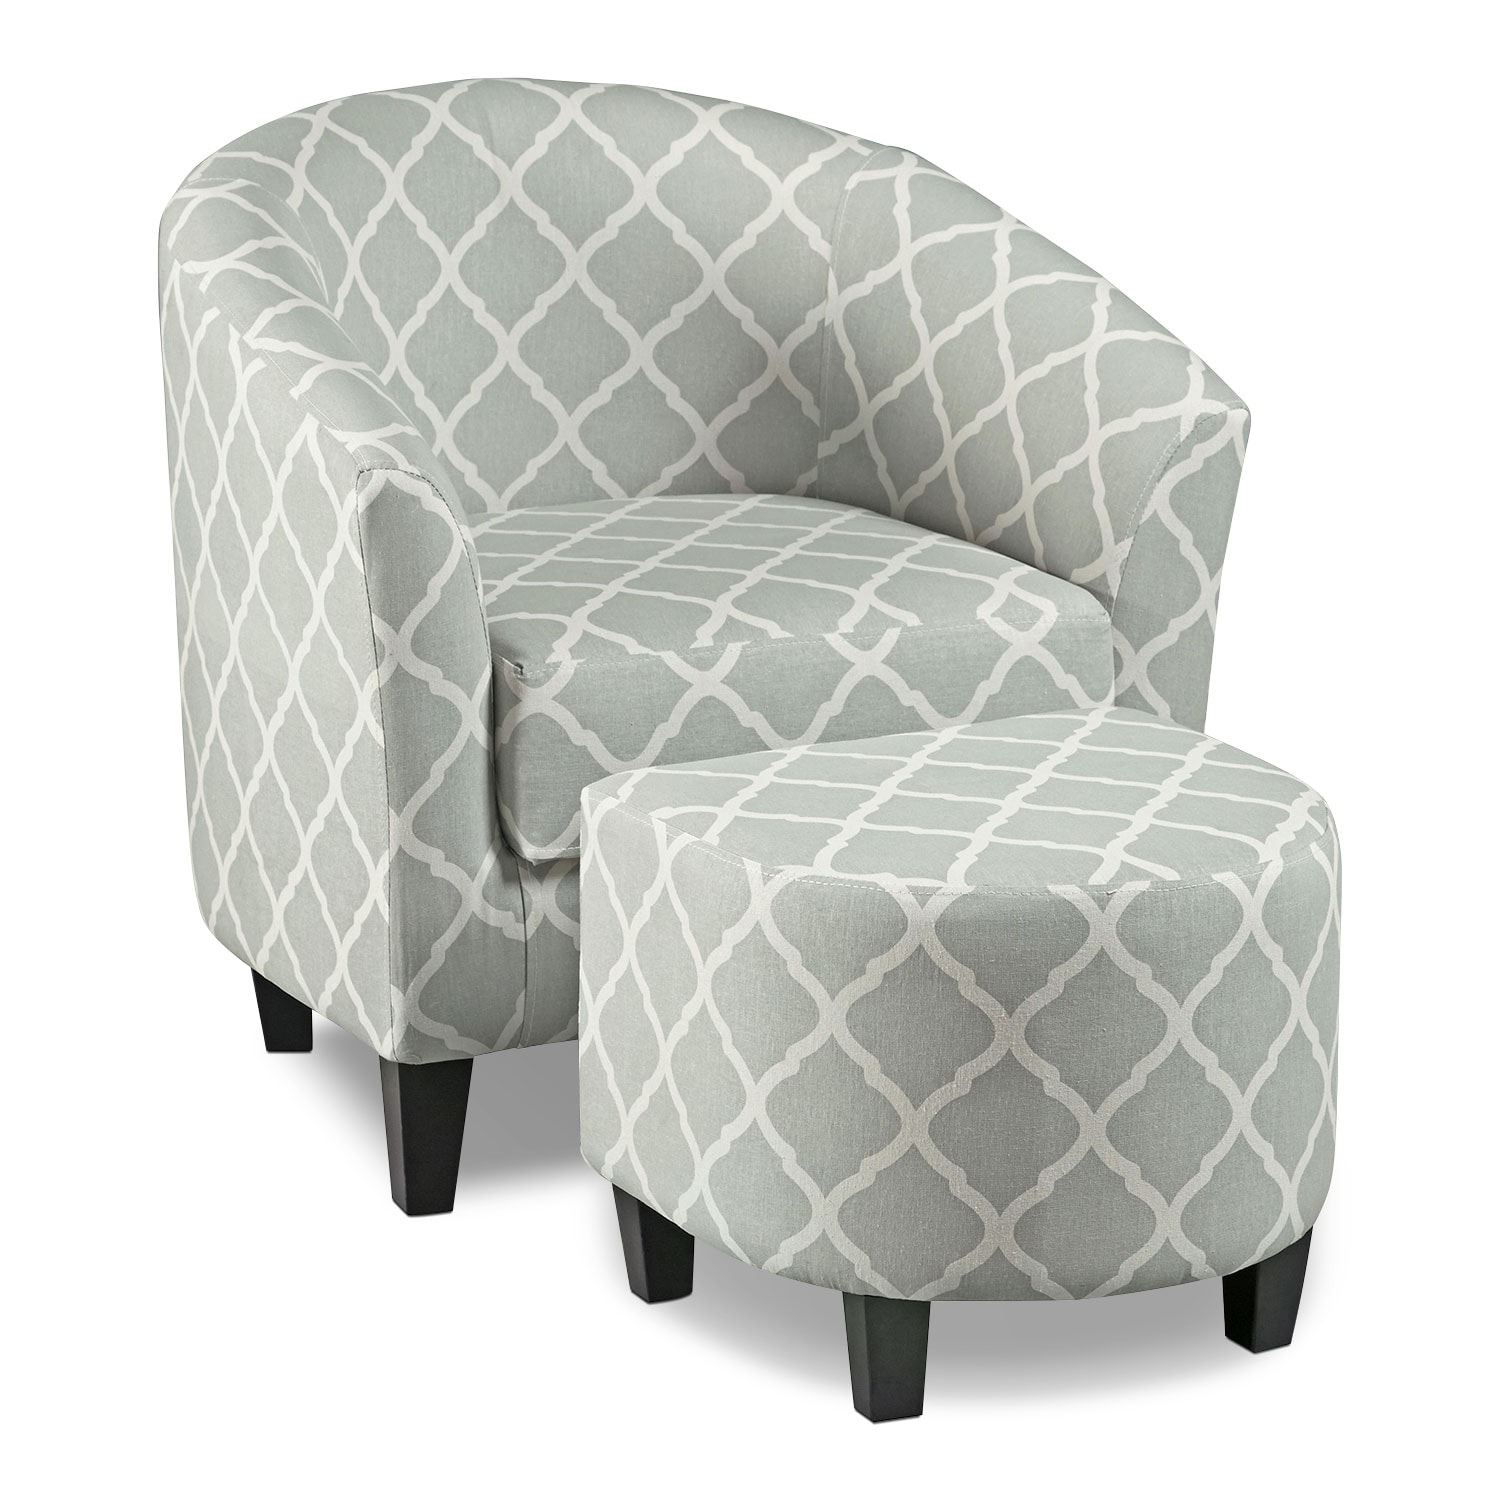 Sperrie accent chair and ottoman gray value city furniture and mattresses